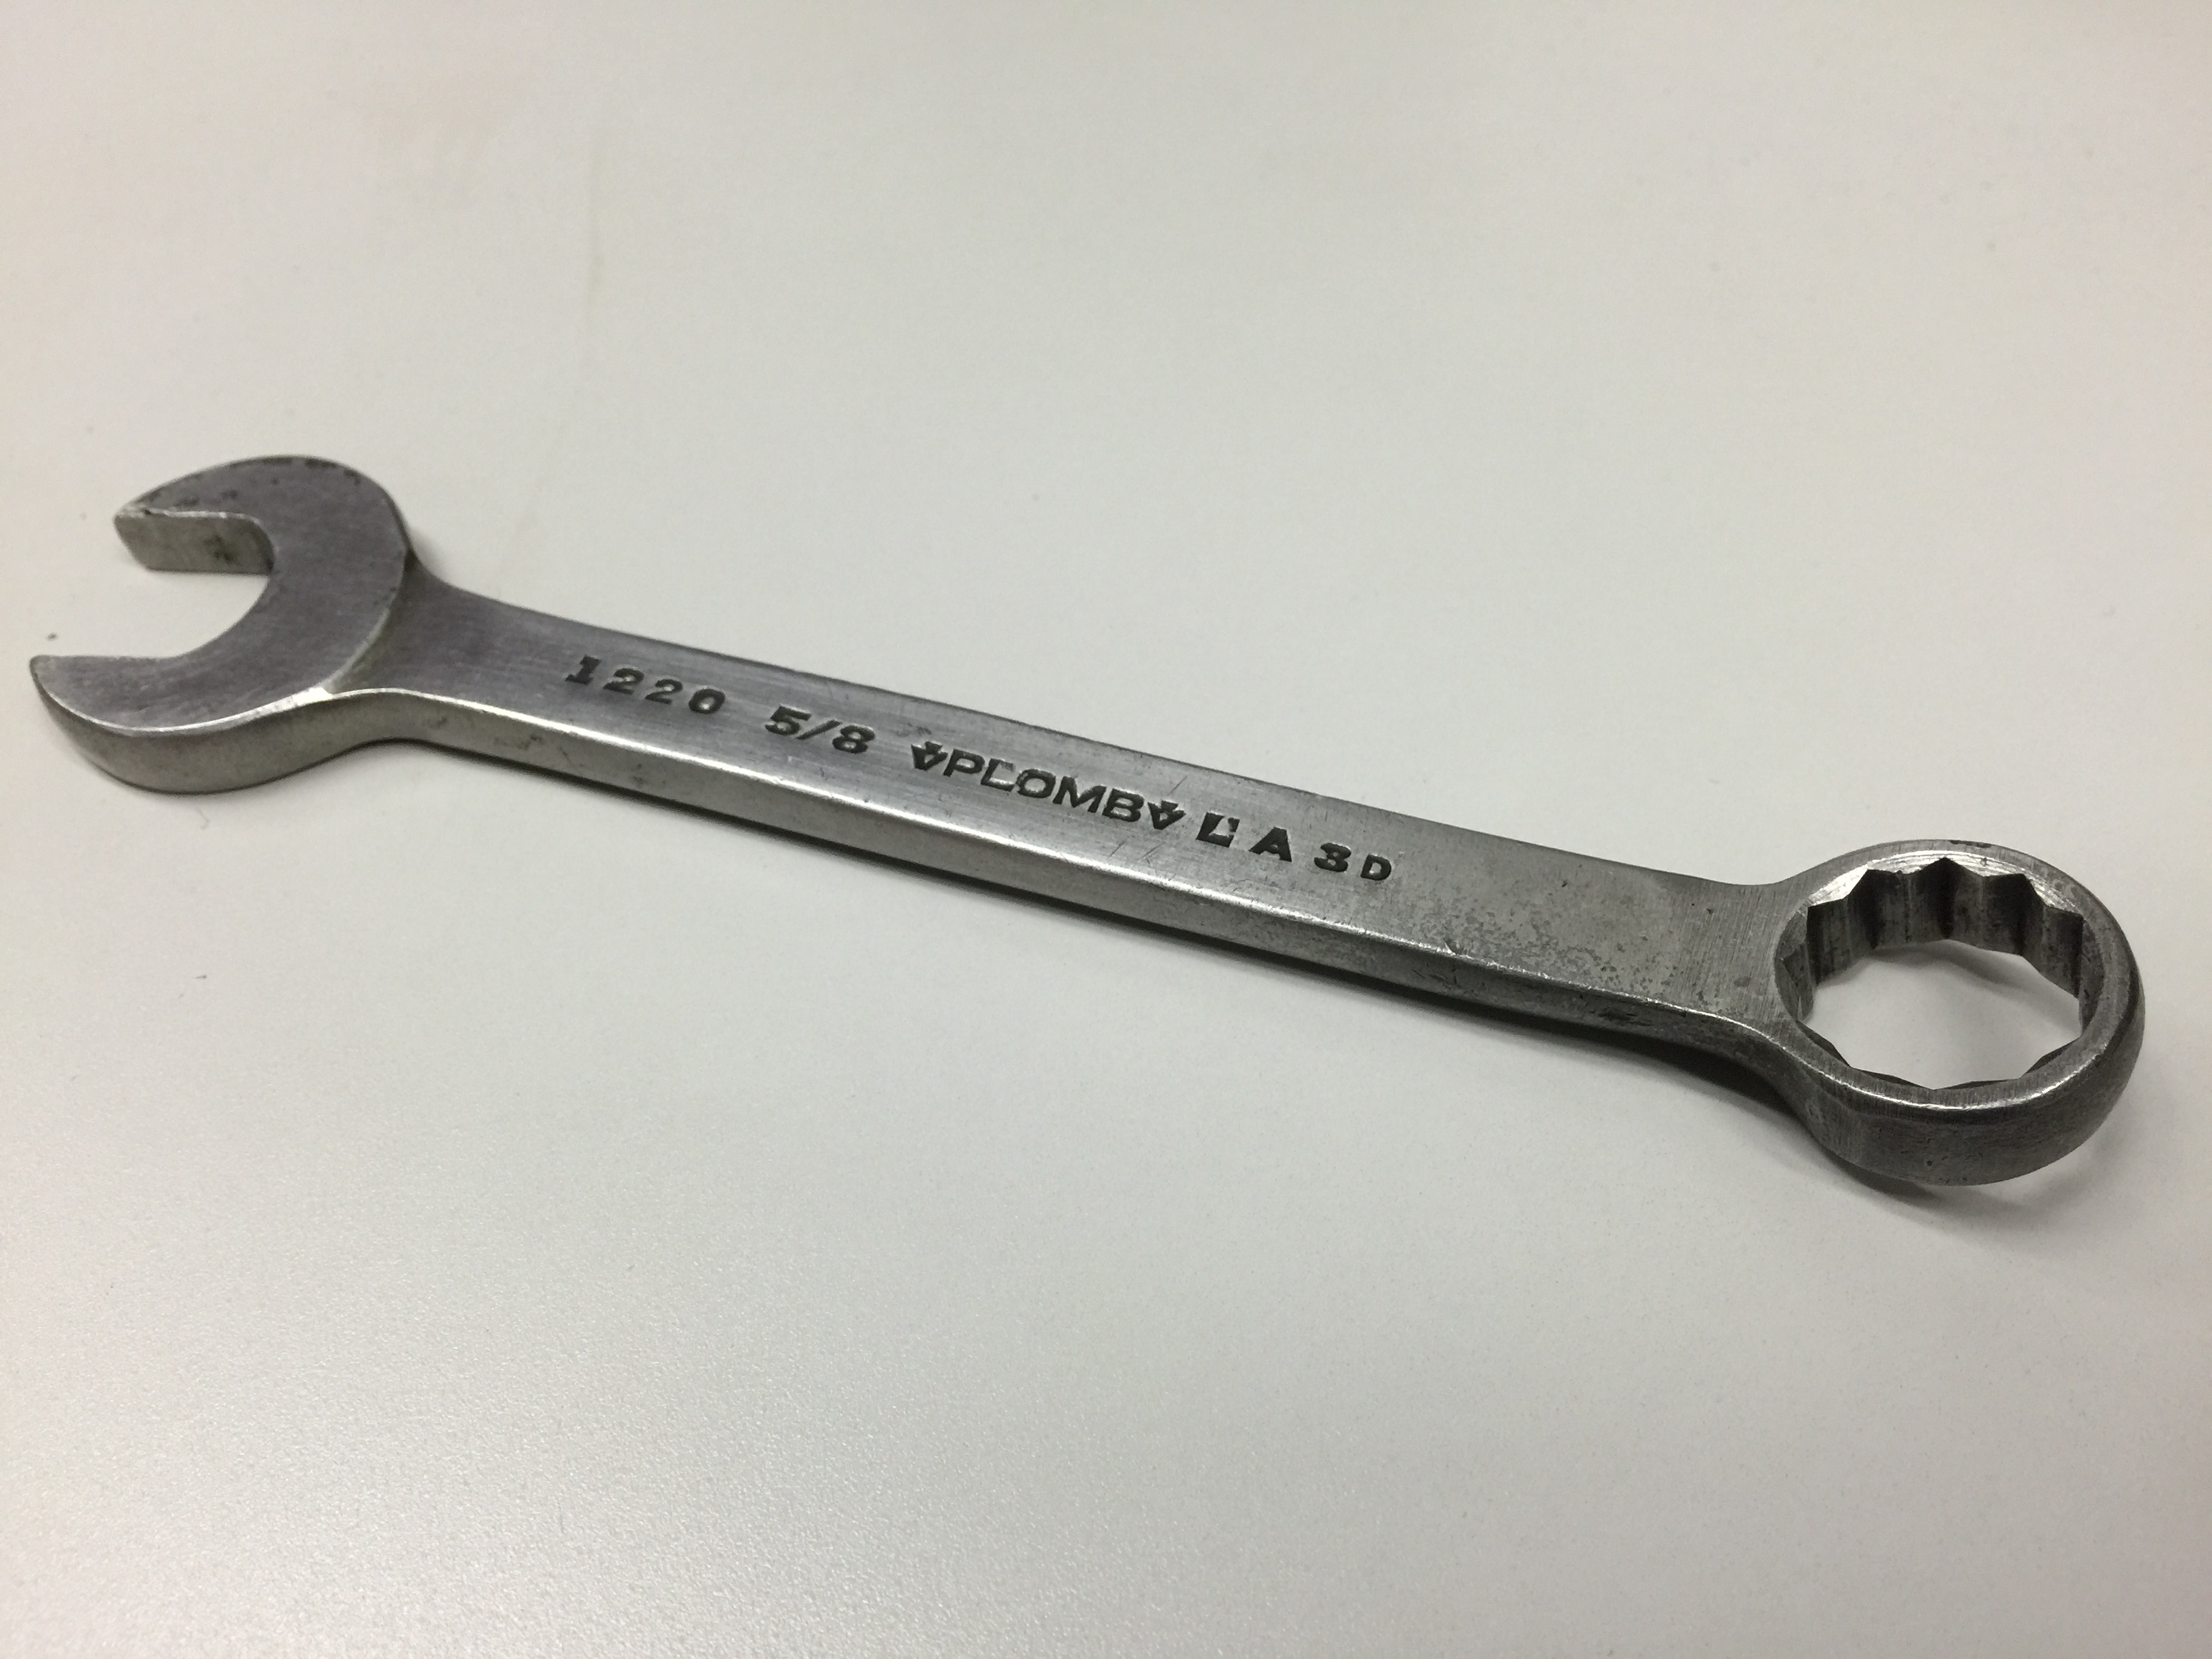 how to use a combination wrench Define combination wrench: a wrench with one open end and one socket end.